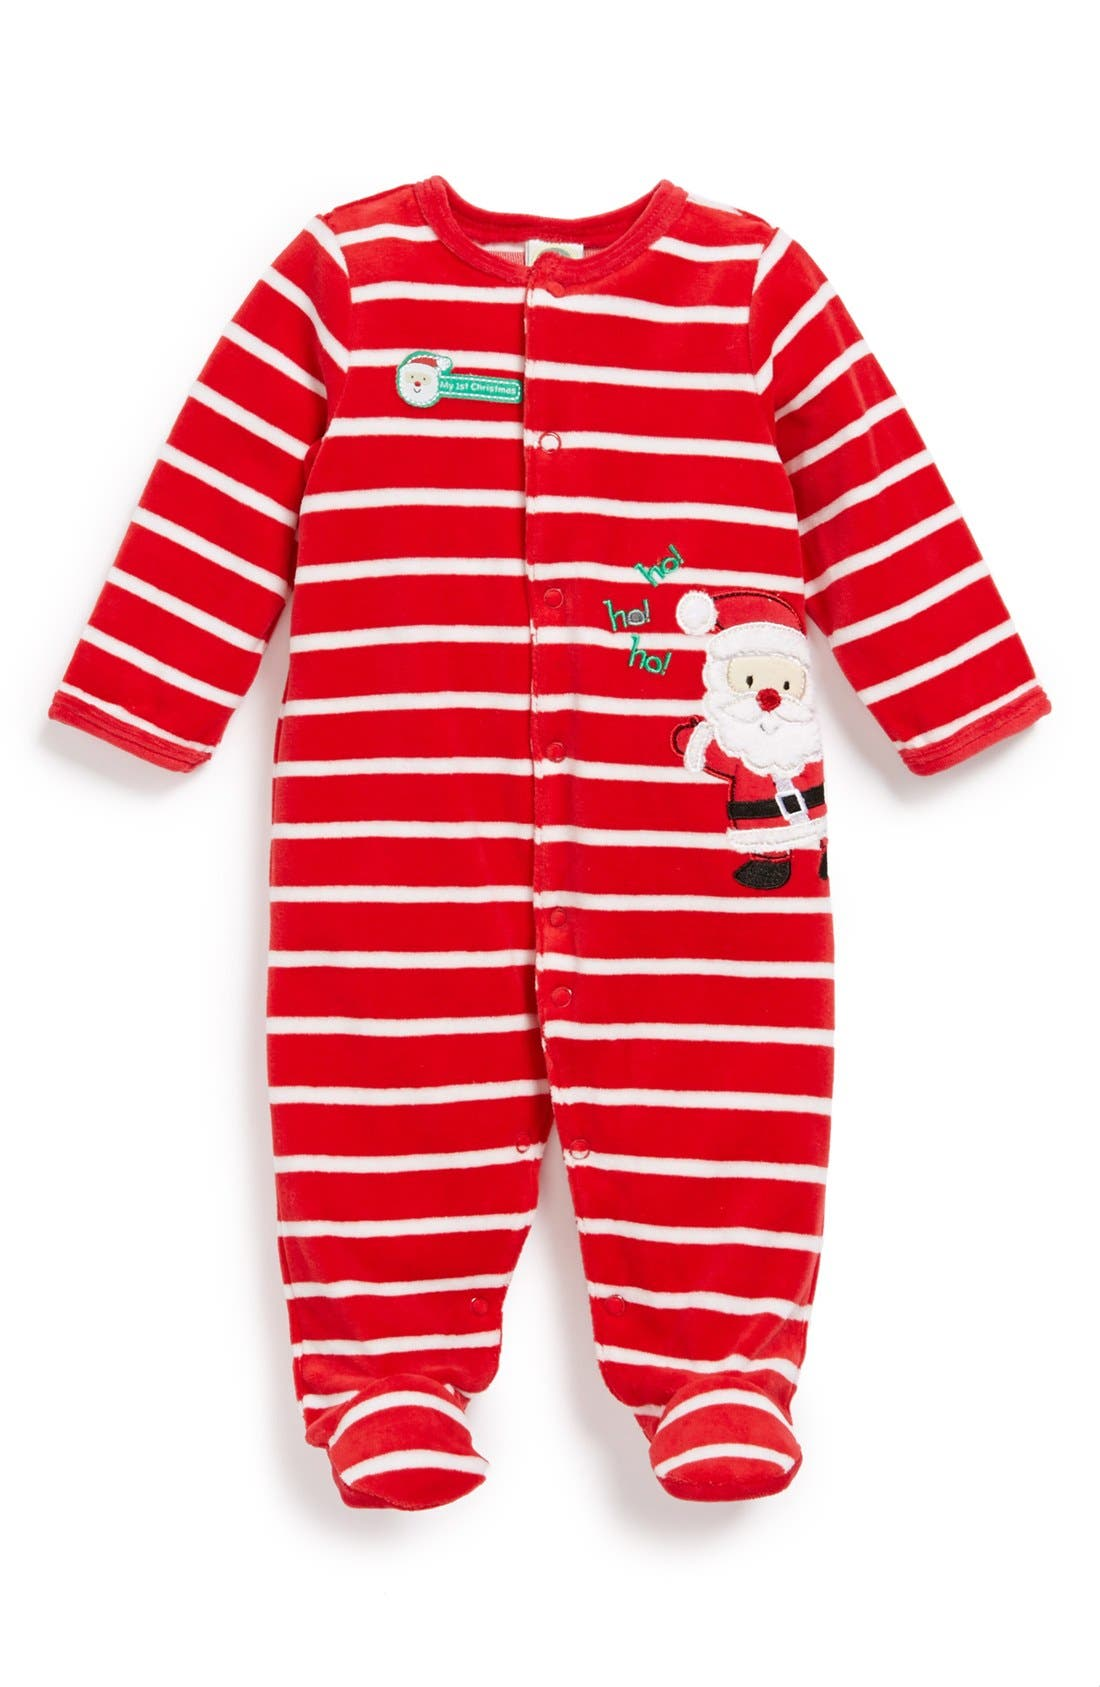 Alternate Image 1 Selected - Little Me 'First Christmas - Santa' Velour One-Piece (Baby)